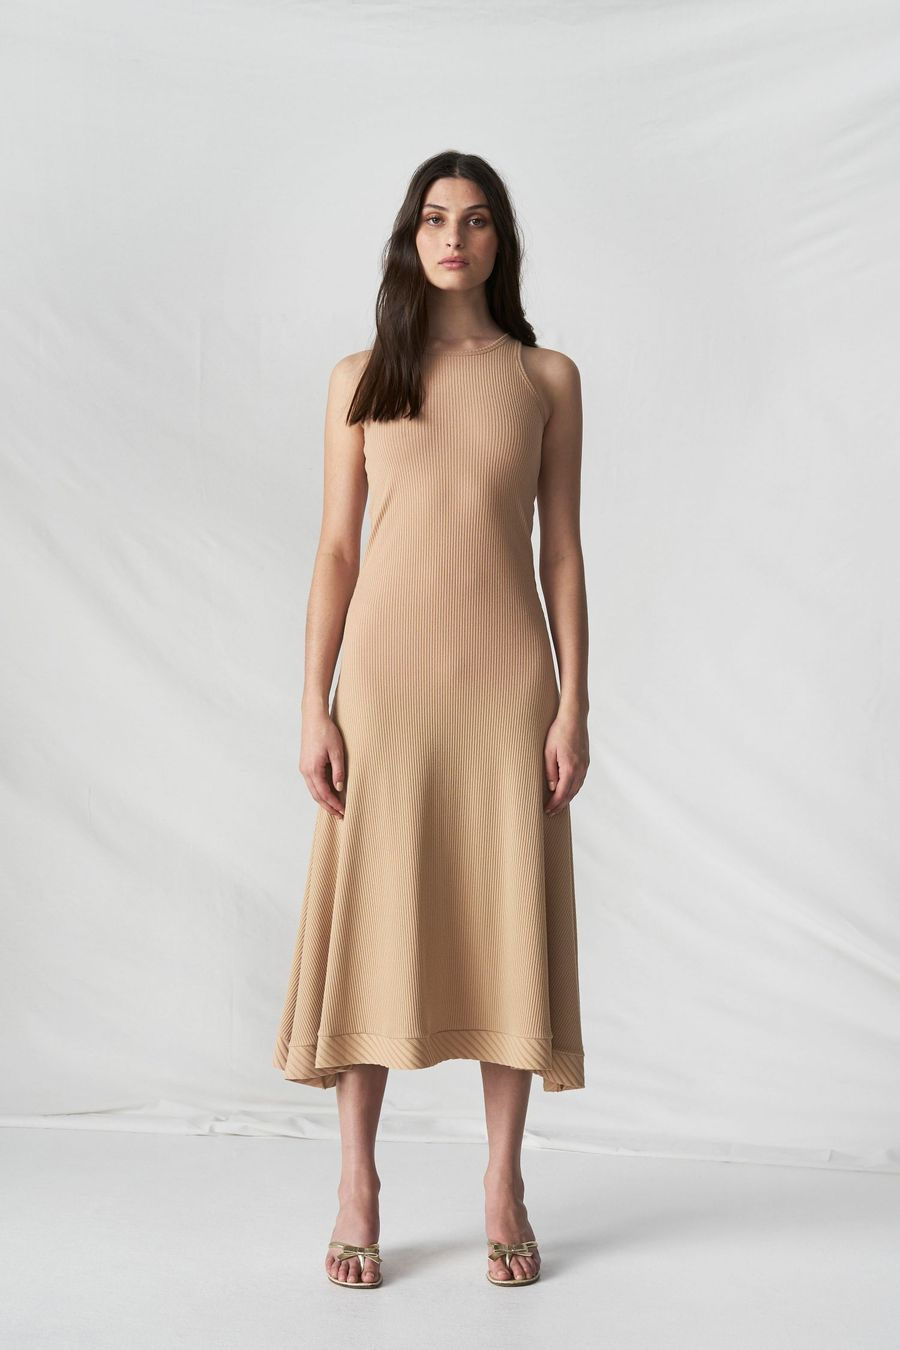 COURAGE AND ENDURANCE DRESS - CAMEL